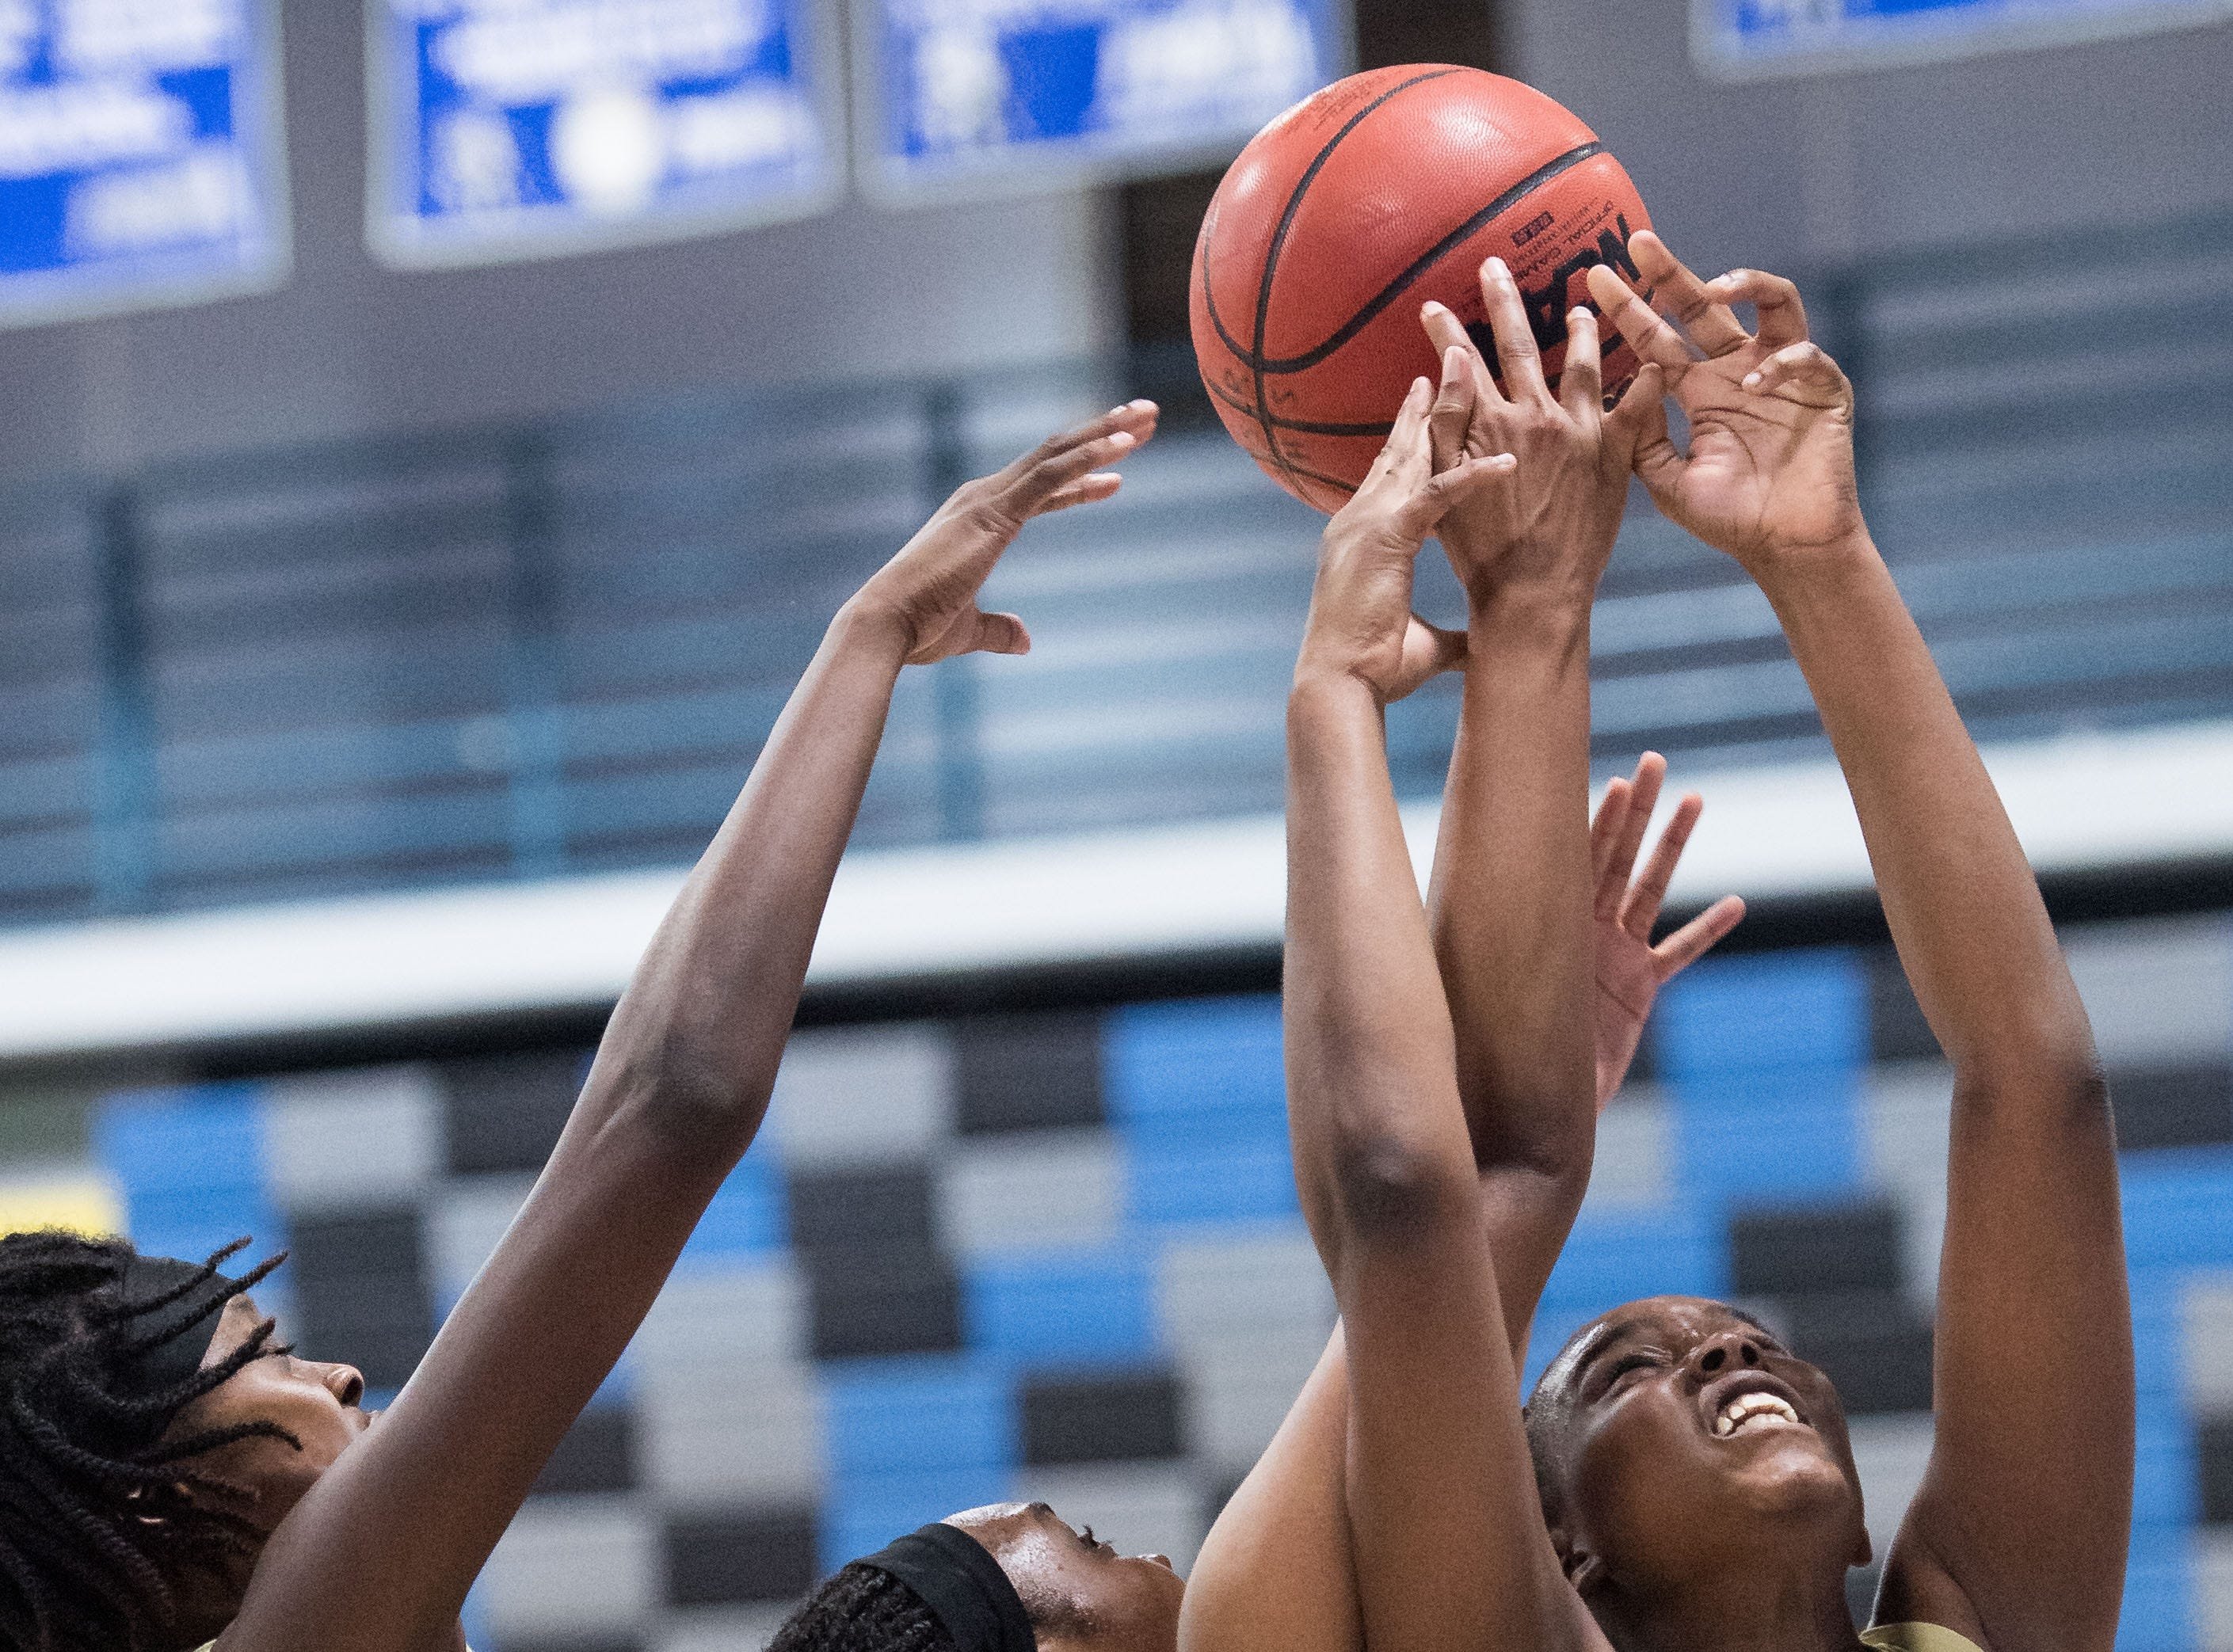 Treasure Coast plays against Sebastian River during the high school girls basketball game Wednesday, Jan. 30, 2019, at Sebastian River High School.